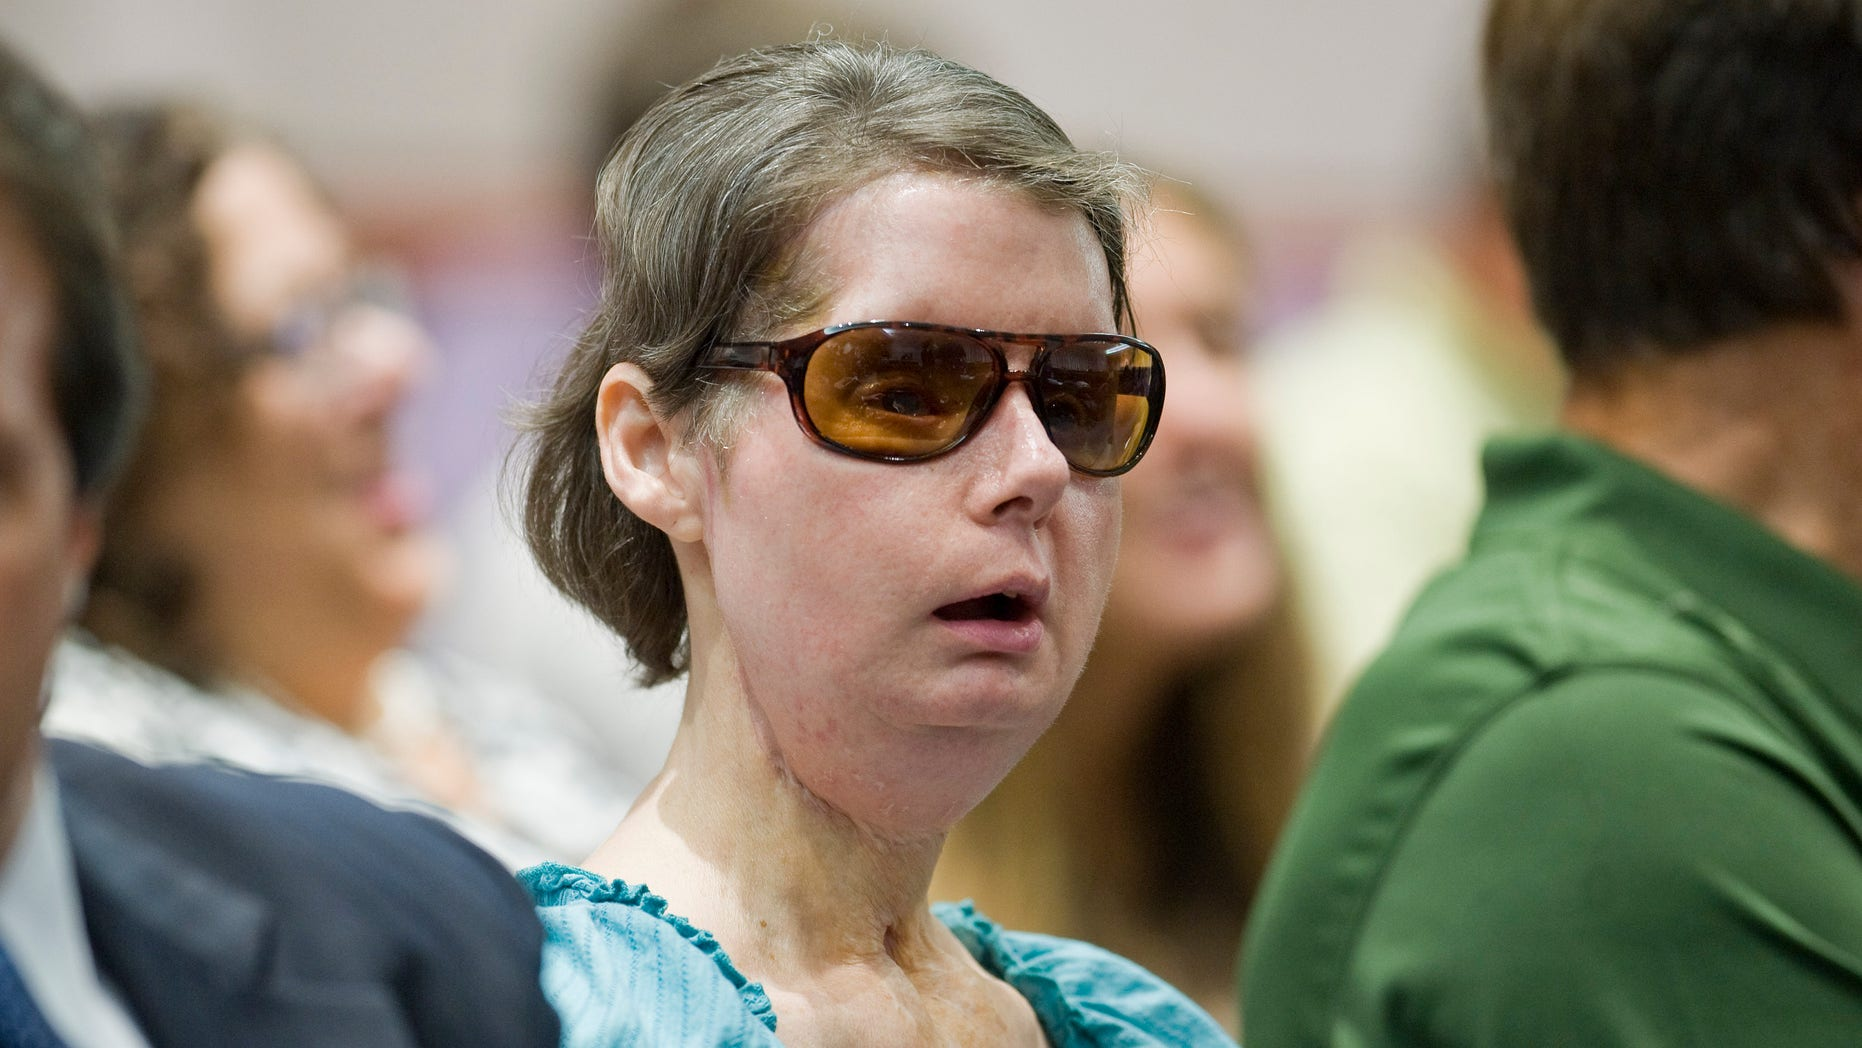 Aug. 10, 2012: File photo, Charla Nash sits before a hearing at the Legislative Office Building in Hartford, Conn. Lawyers for Nash, who was mauled by a chimpanzee in Connecticut, have agreed to settle a lawsuit against the estate of the primate's now-dead owner.